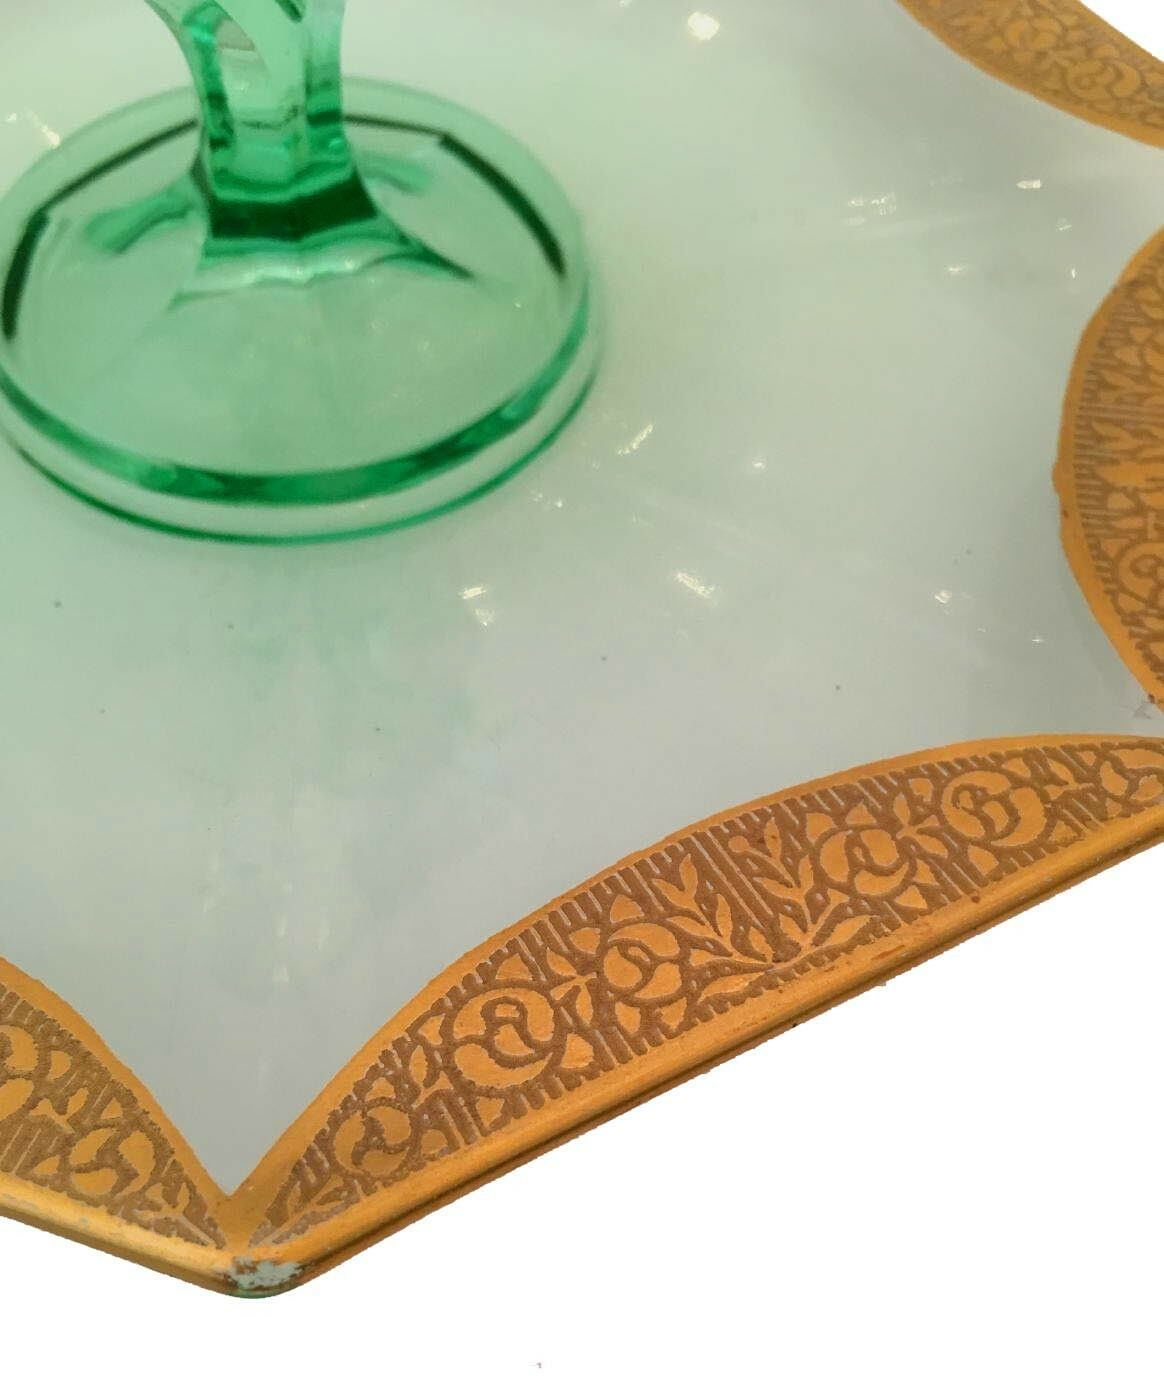 Vaseline Green Center Handle Snack Tray With Gold Floral Trim